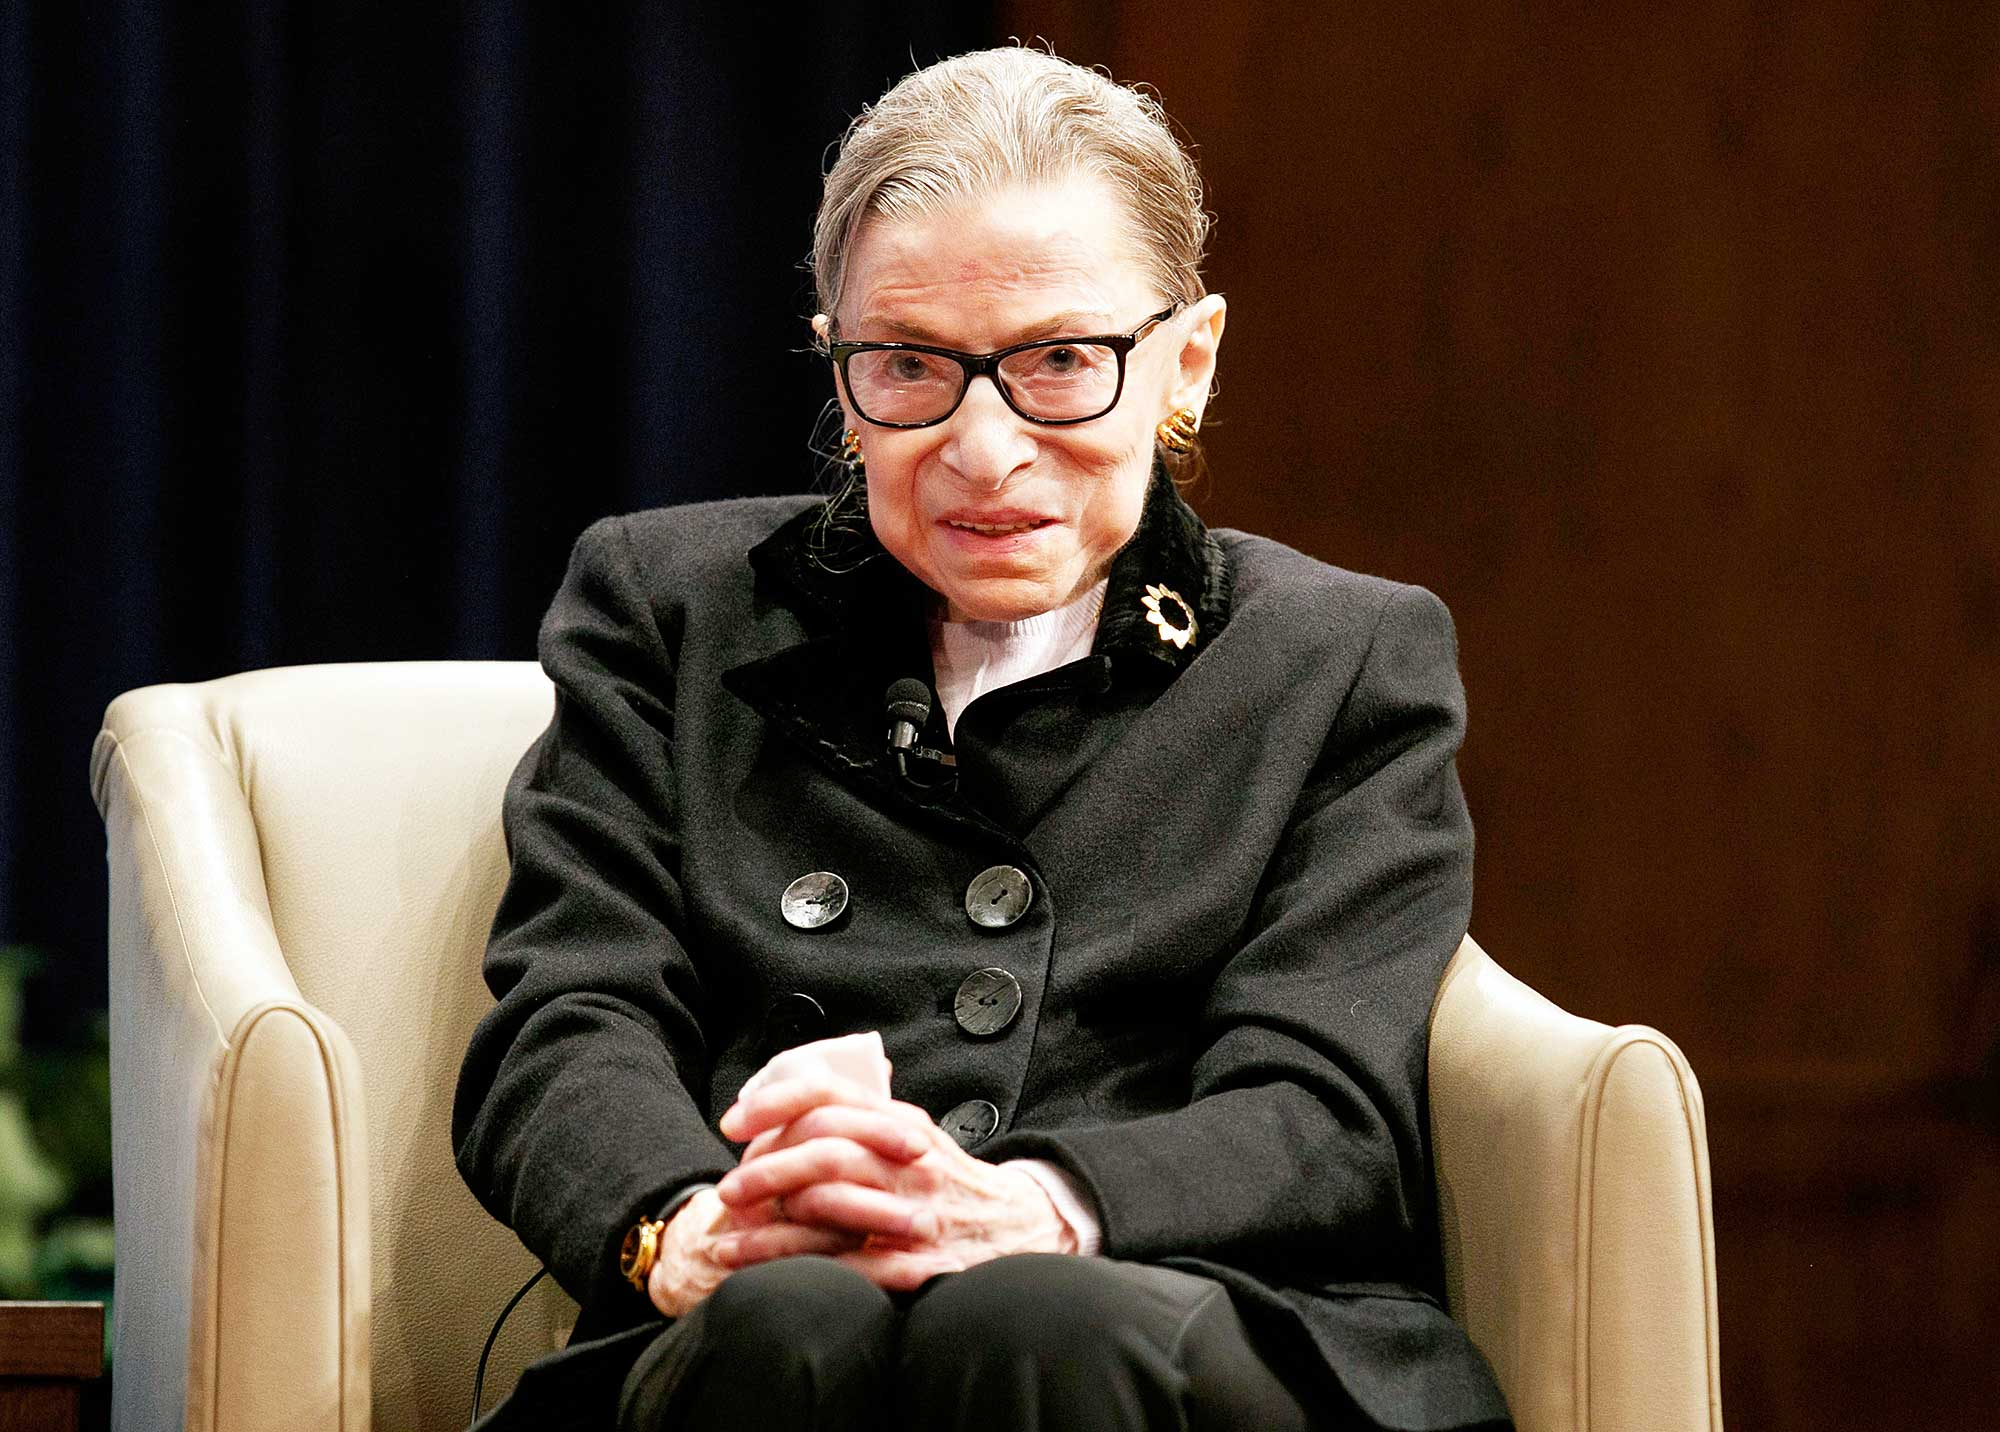 Ruth Bader Ginsberg attends Georgetown Law second annual Ruth Bader Ginsburg Lecture Ruth Bader Ginsburg Cancer Has Returned But Says It Wont Affect Her Supreme Court Seat